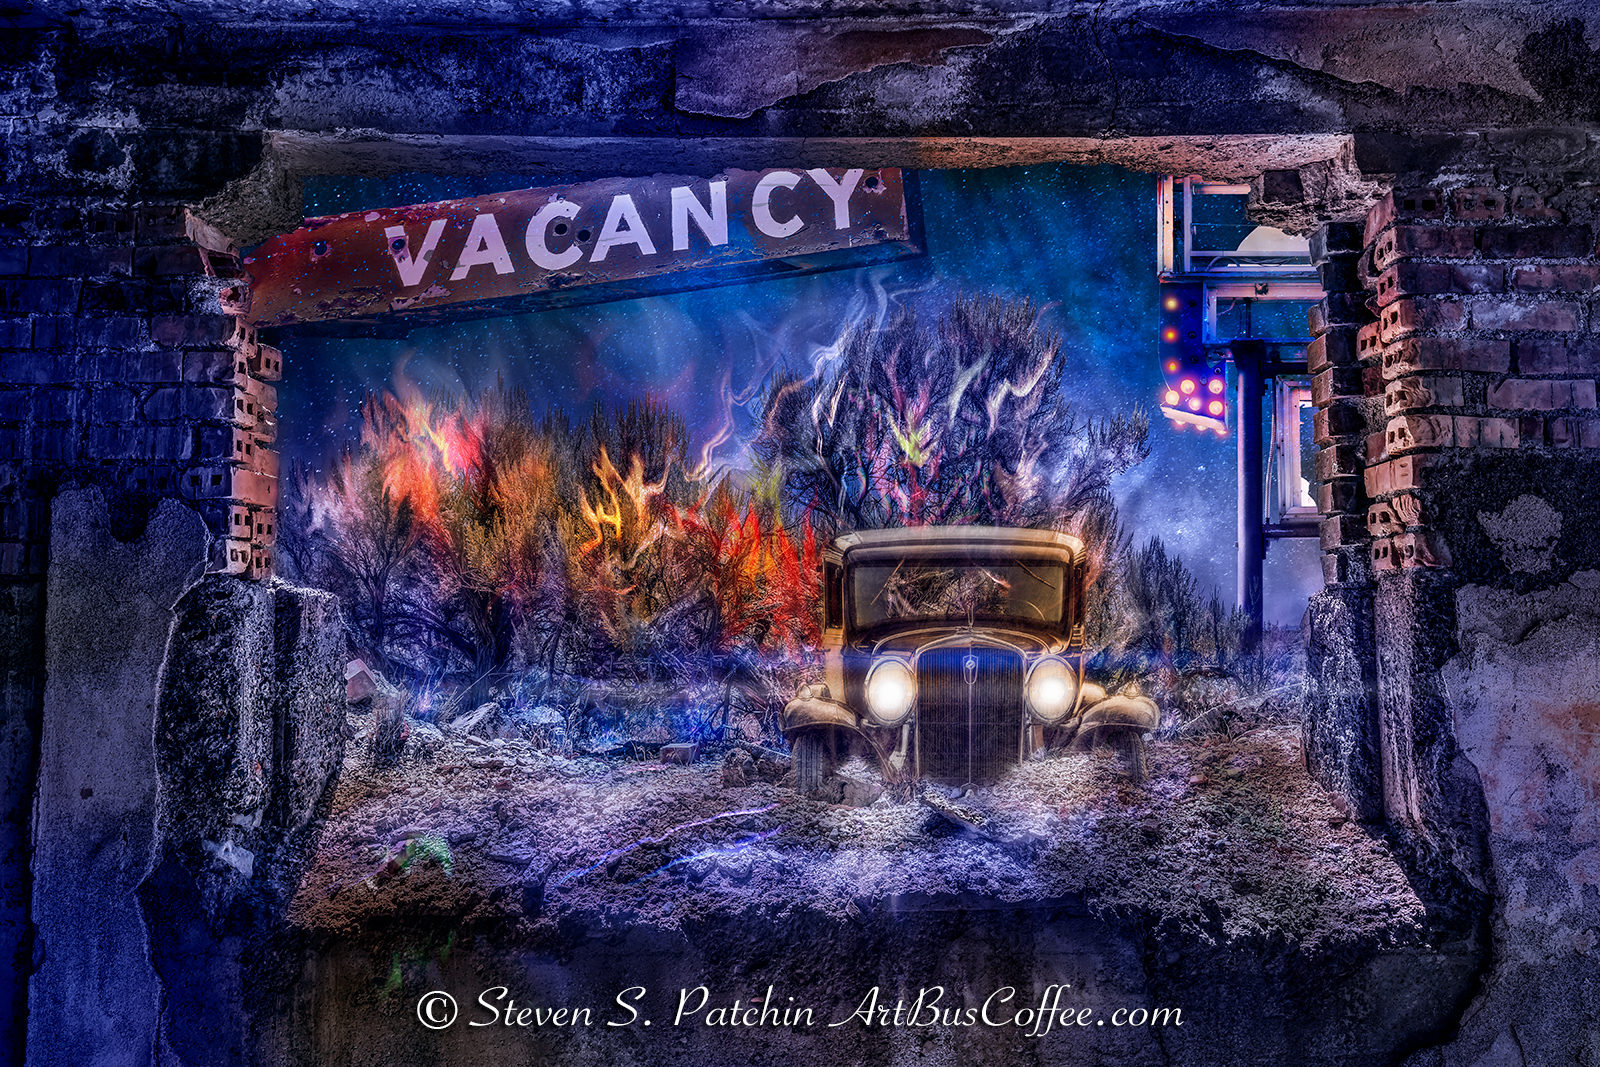 Vacancy by Steve Patchin